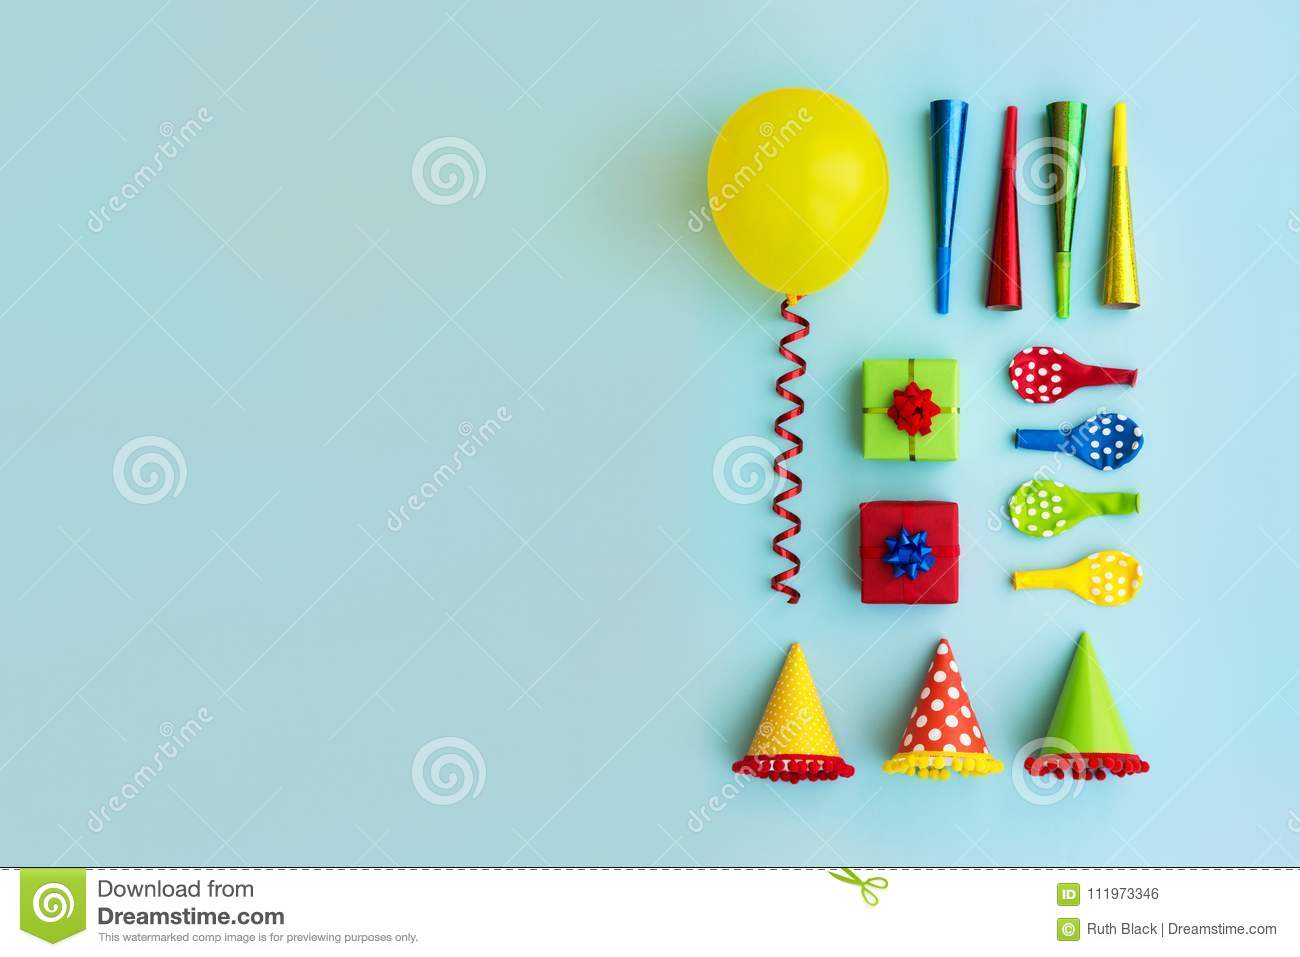 Colorful collection of birthday party objects